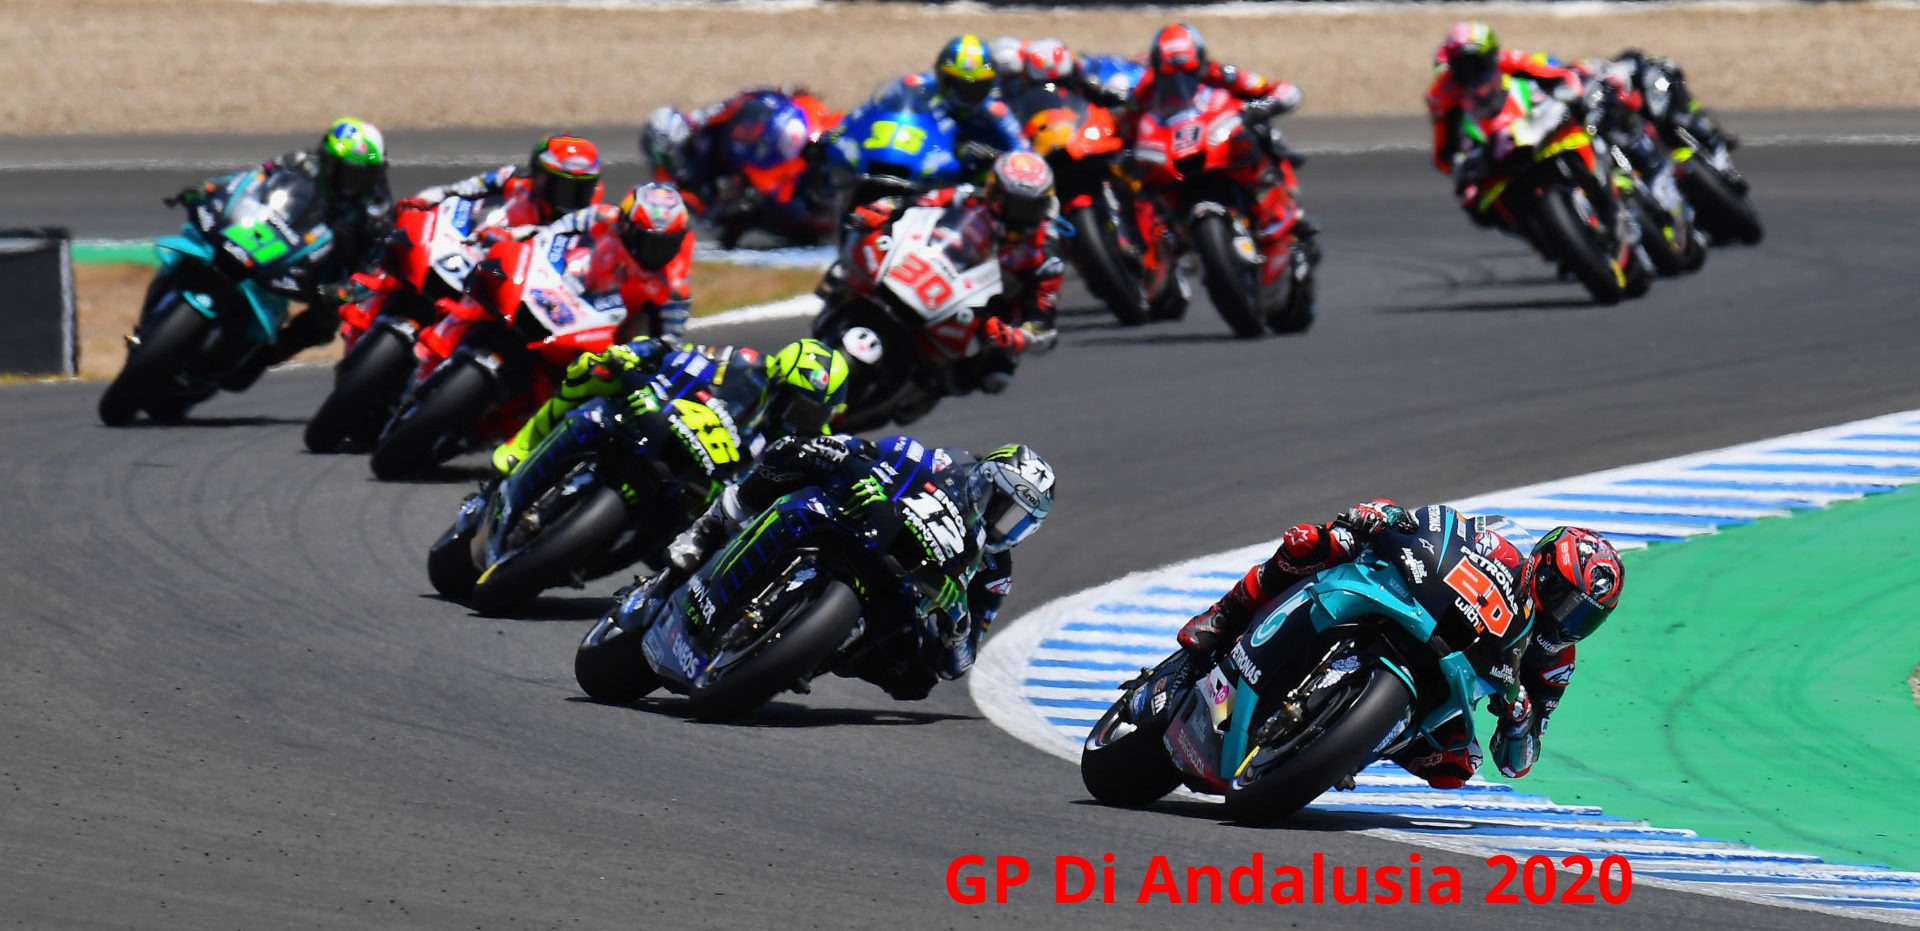 GP Di Andalusia 2020